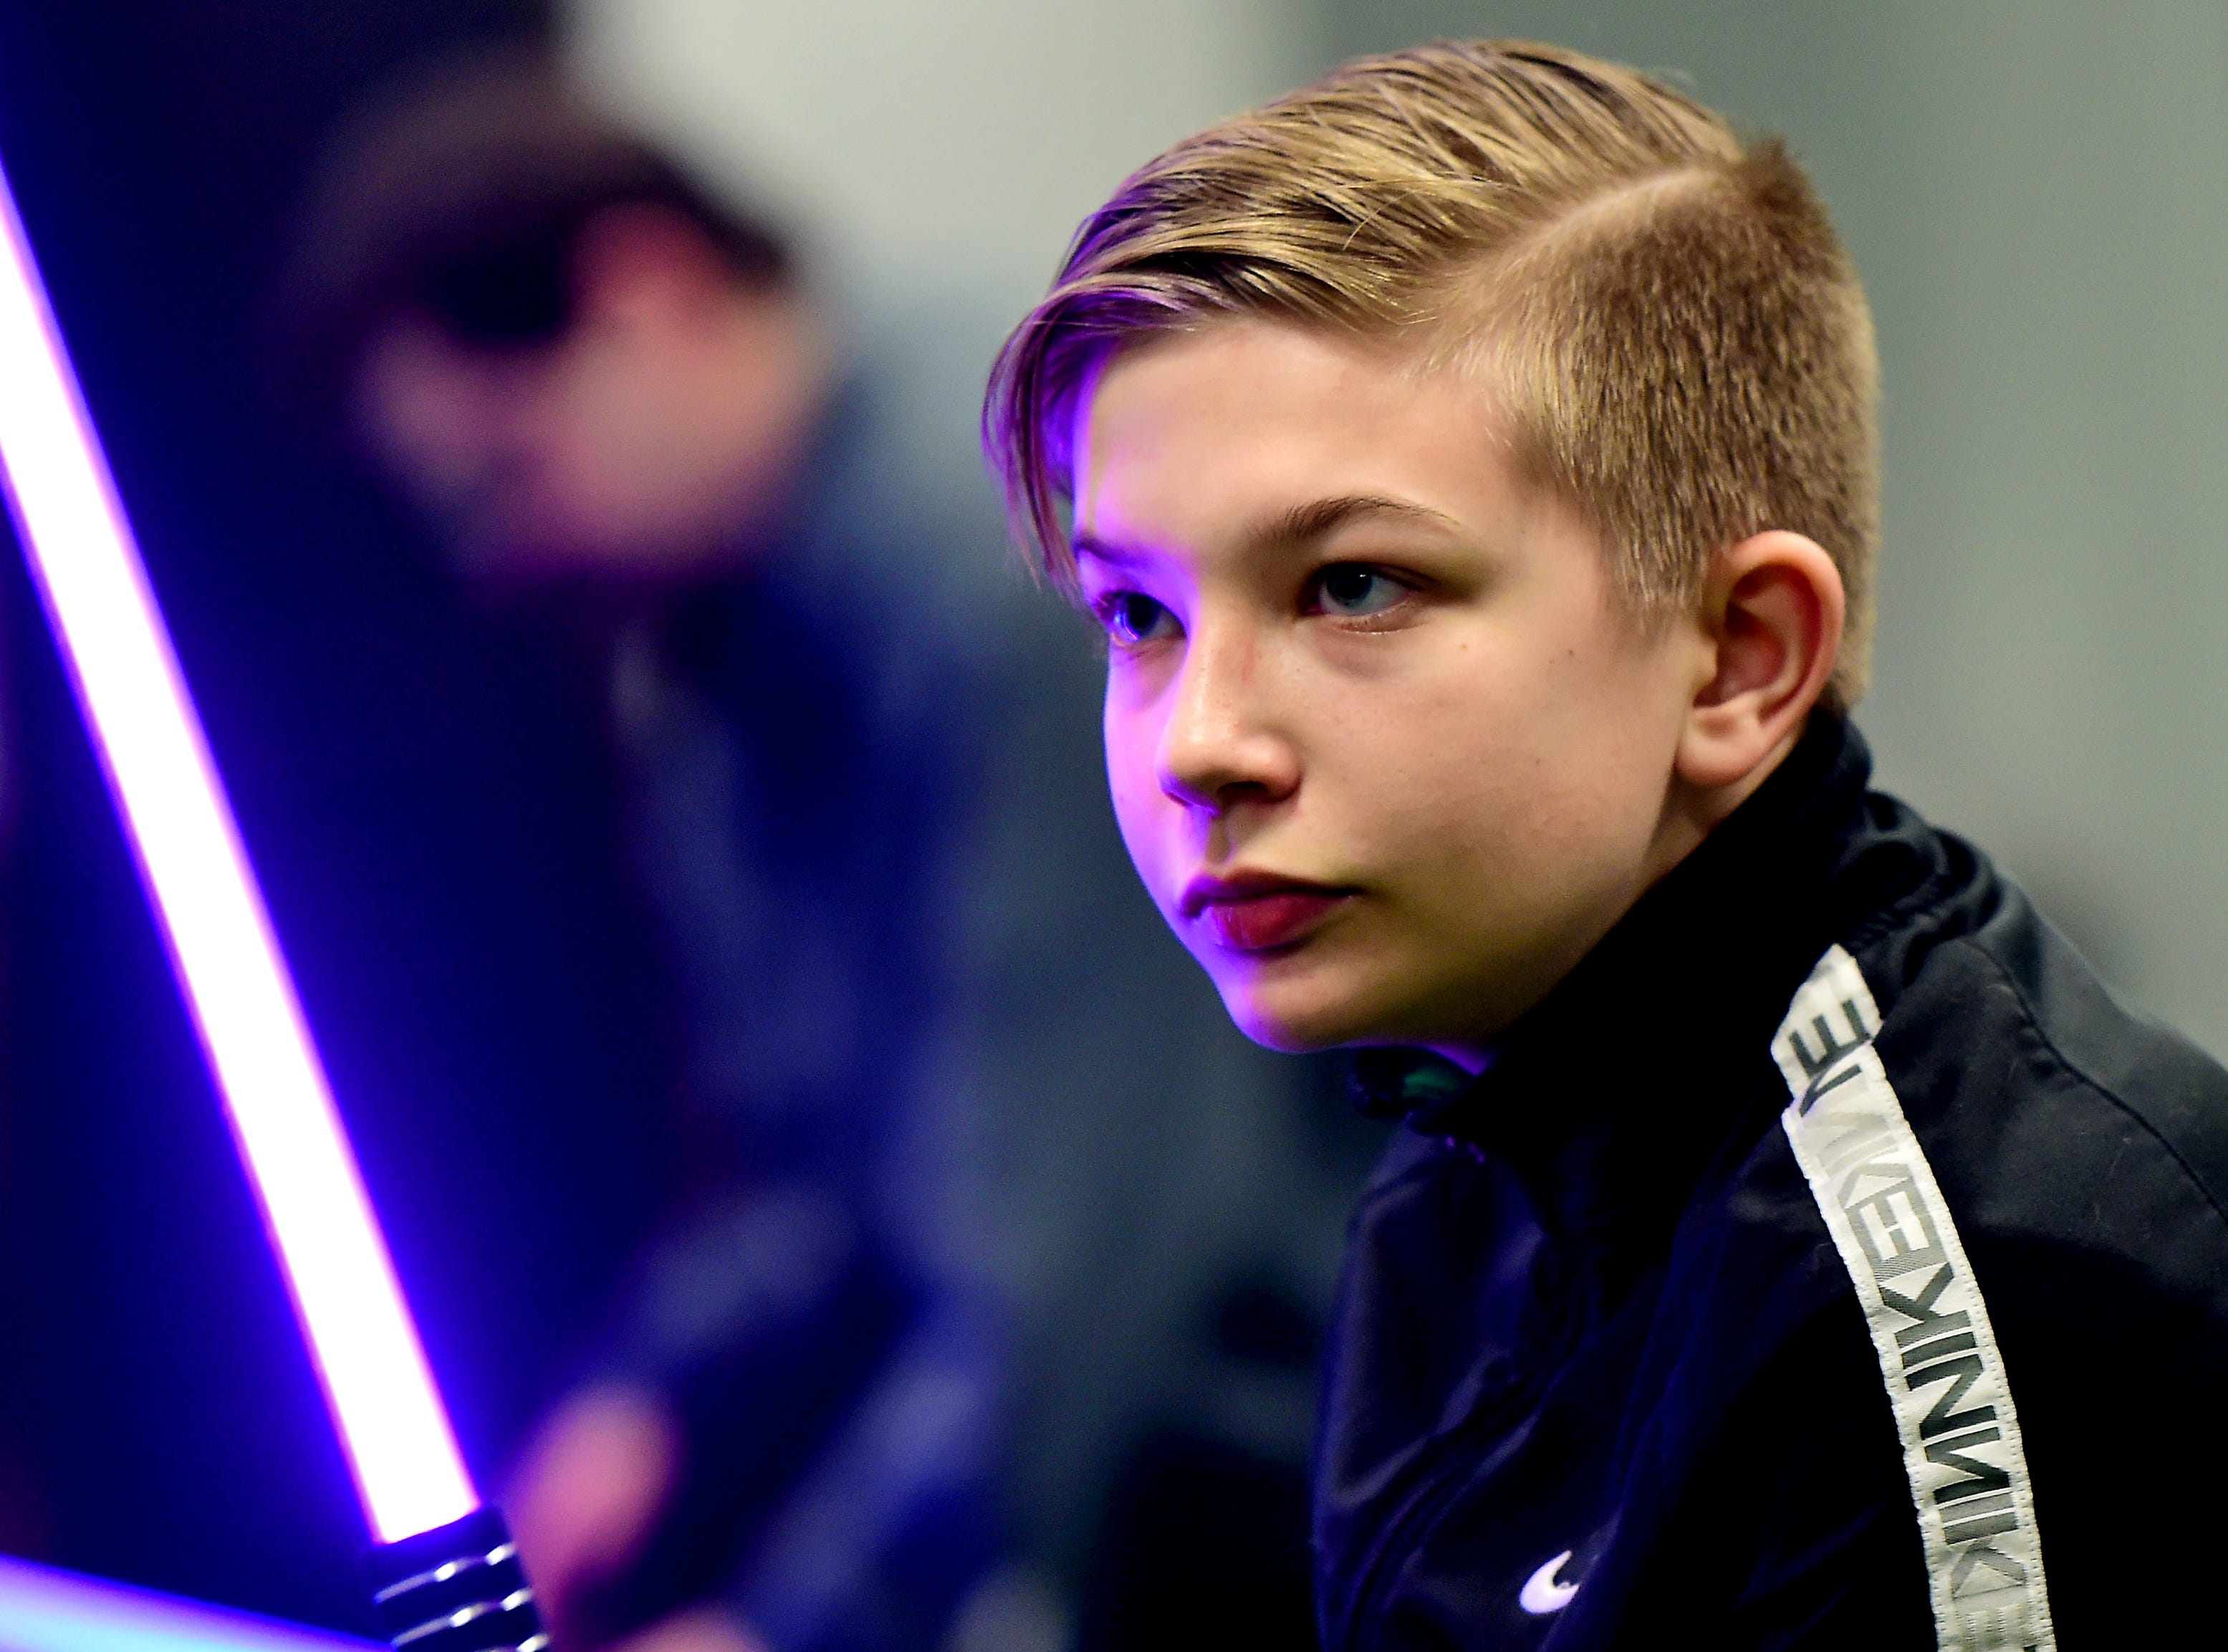 Eli Cornwell of Van Etten, 12, practices his lightsaber skills at the weekly meeting of the Ithaca Sabers at Centerline Fitness & Martial Arts in Ithaca.  February 4, 2019.